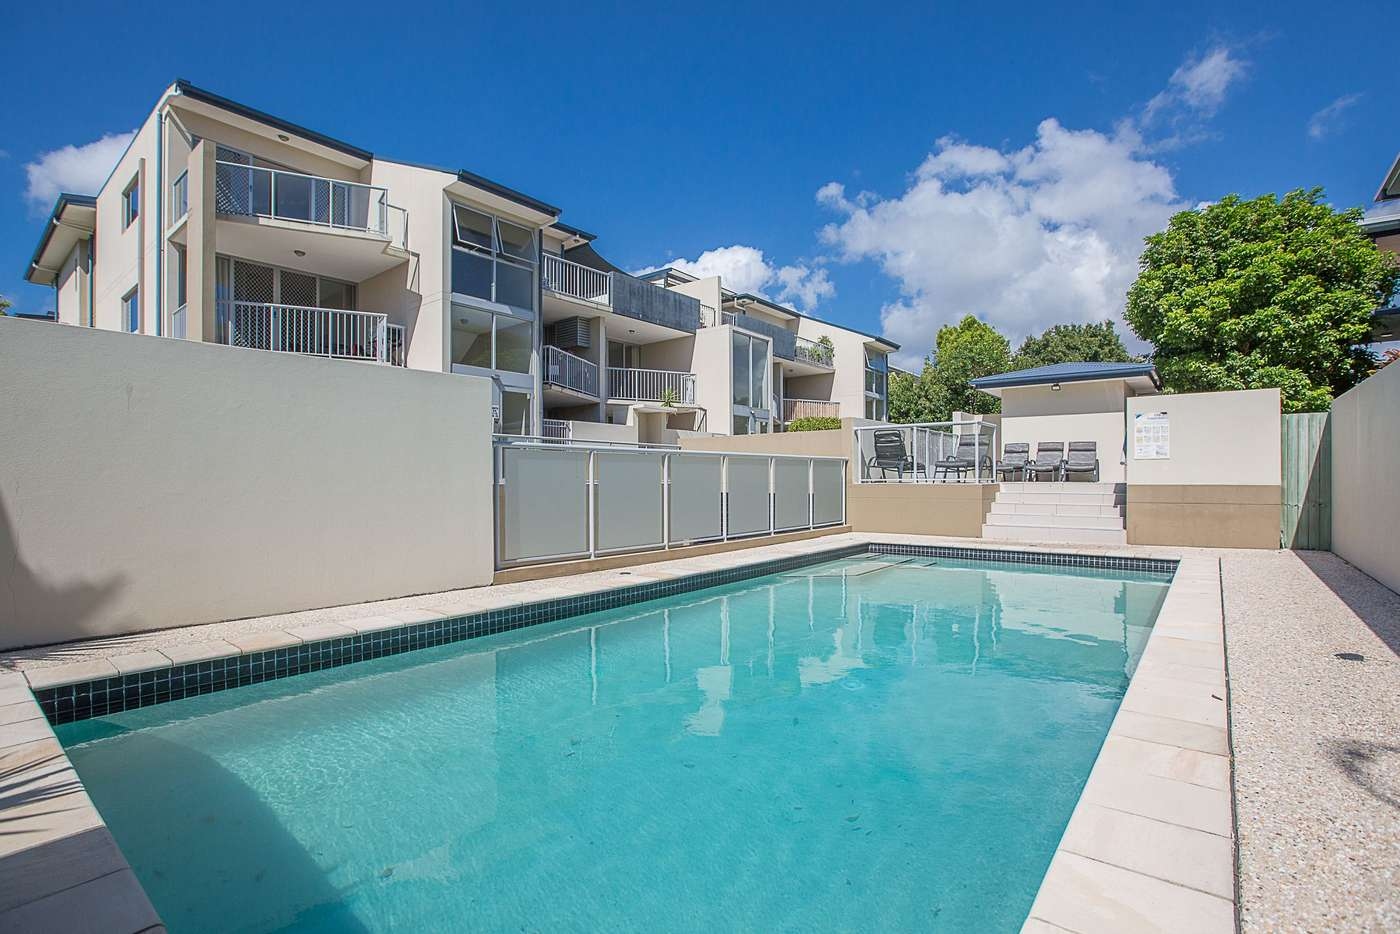 Main view of Homely apartment listing, 5/8 Proud Street, Labrador QLD 4215